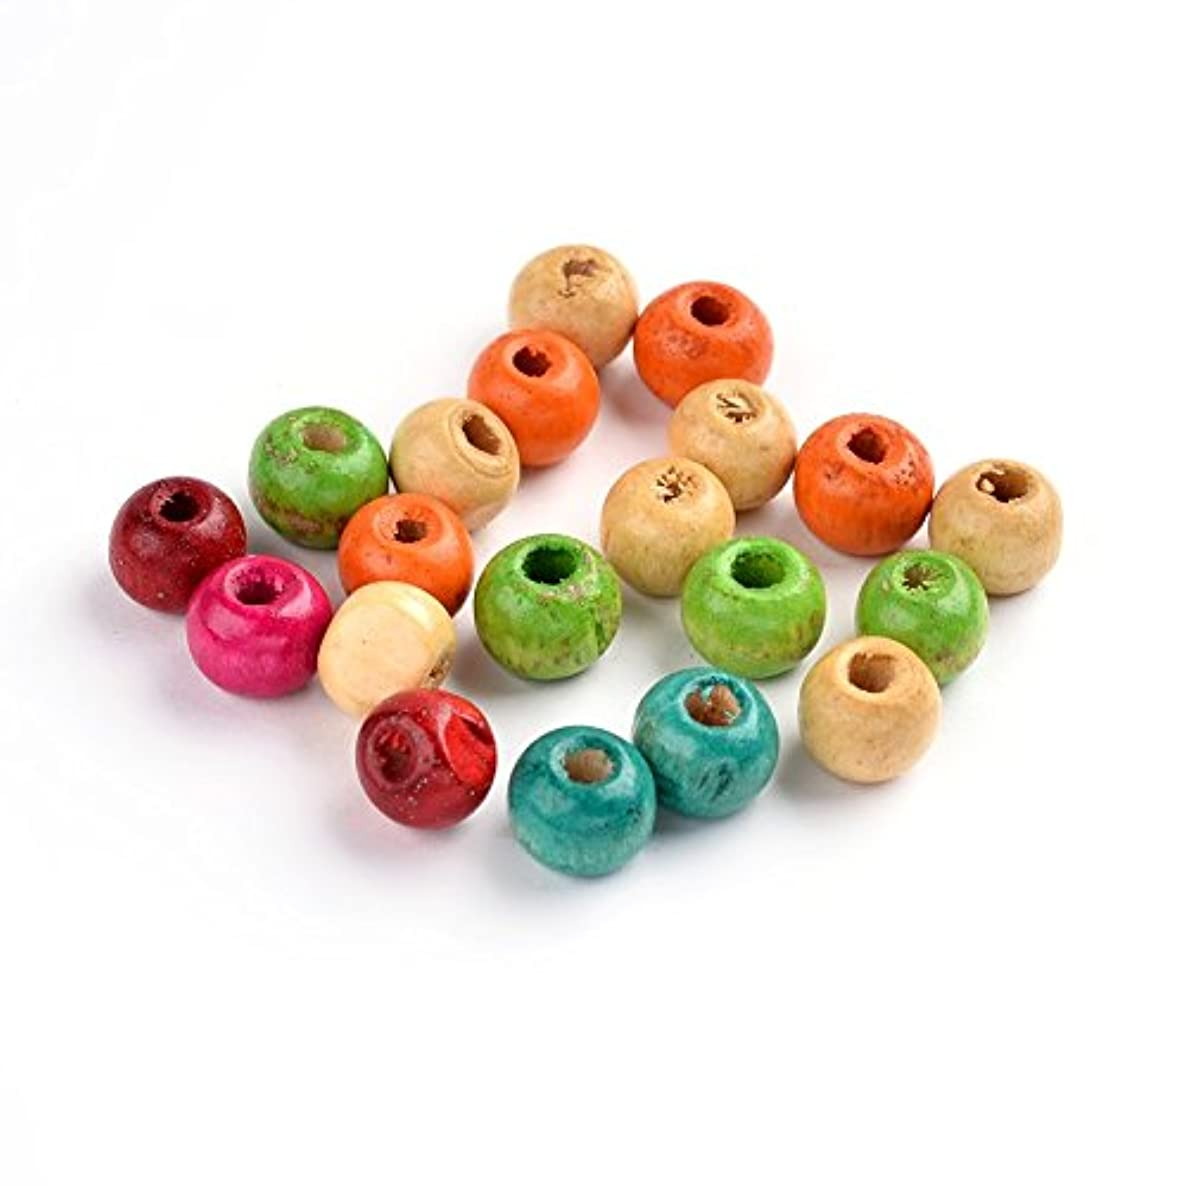 PEPPERLONELY Brand 8mm - 10mm Mixed Round Wood Beads 3mm Hole 3200PCS Over 1 lb/Bag